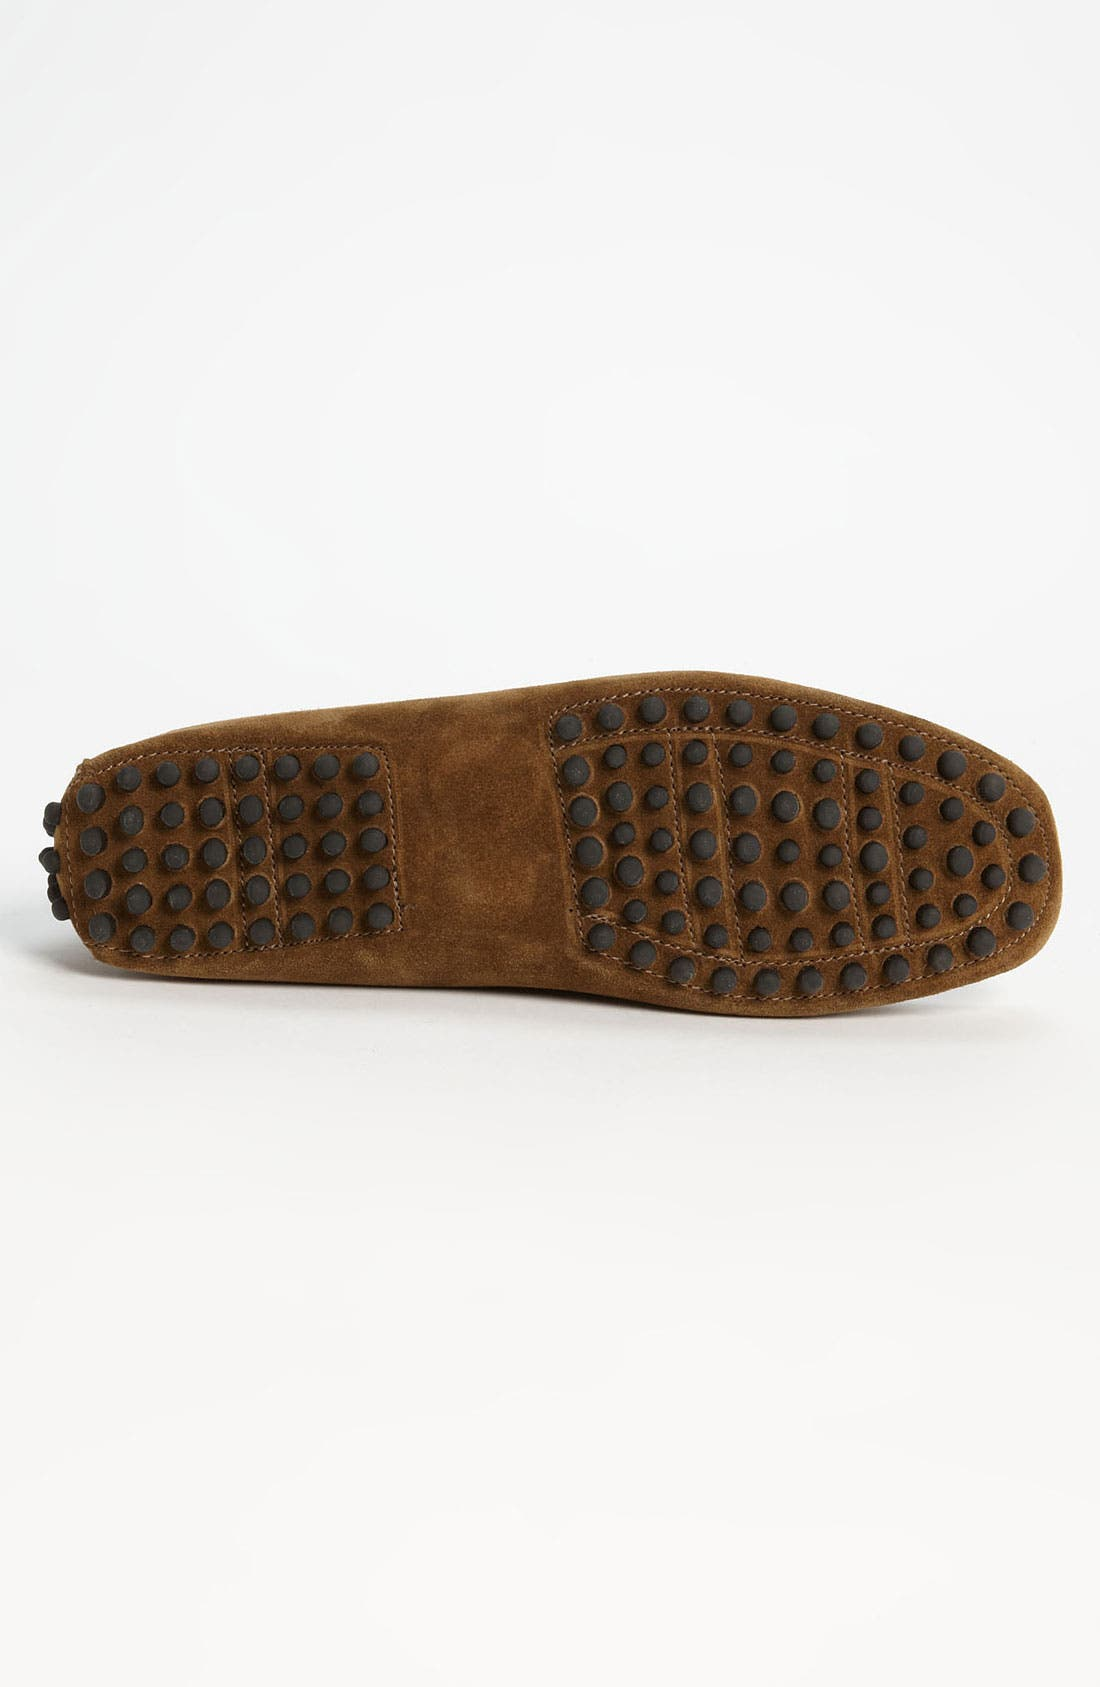 'Antigua' Driving Shoe,                             Alternate thumbnail 4, color,                             Tobacco Suede